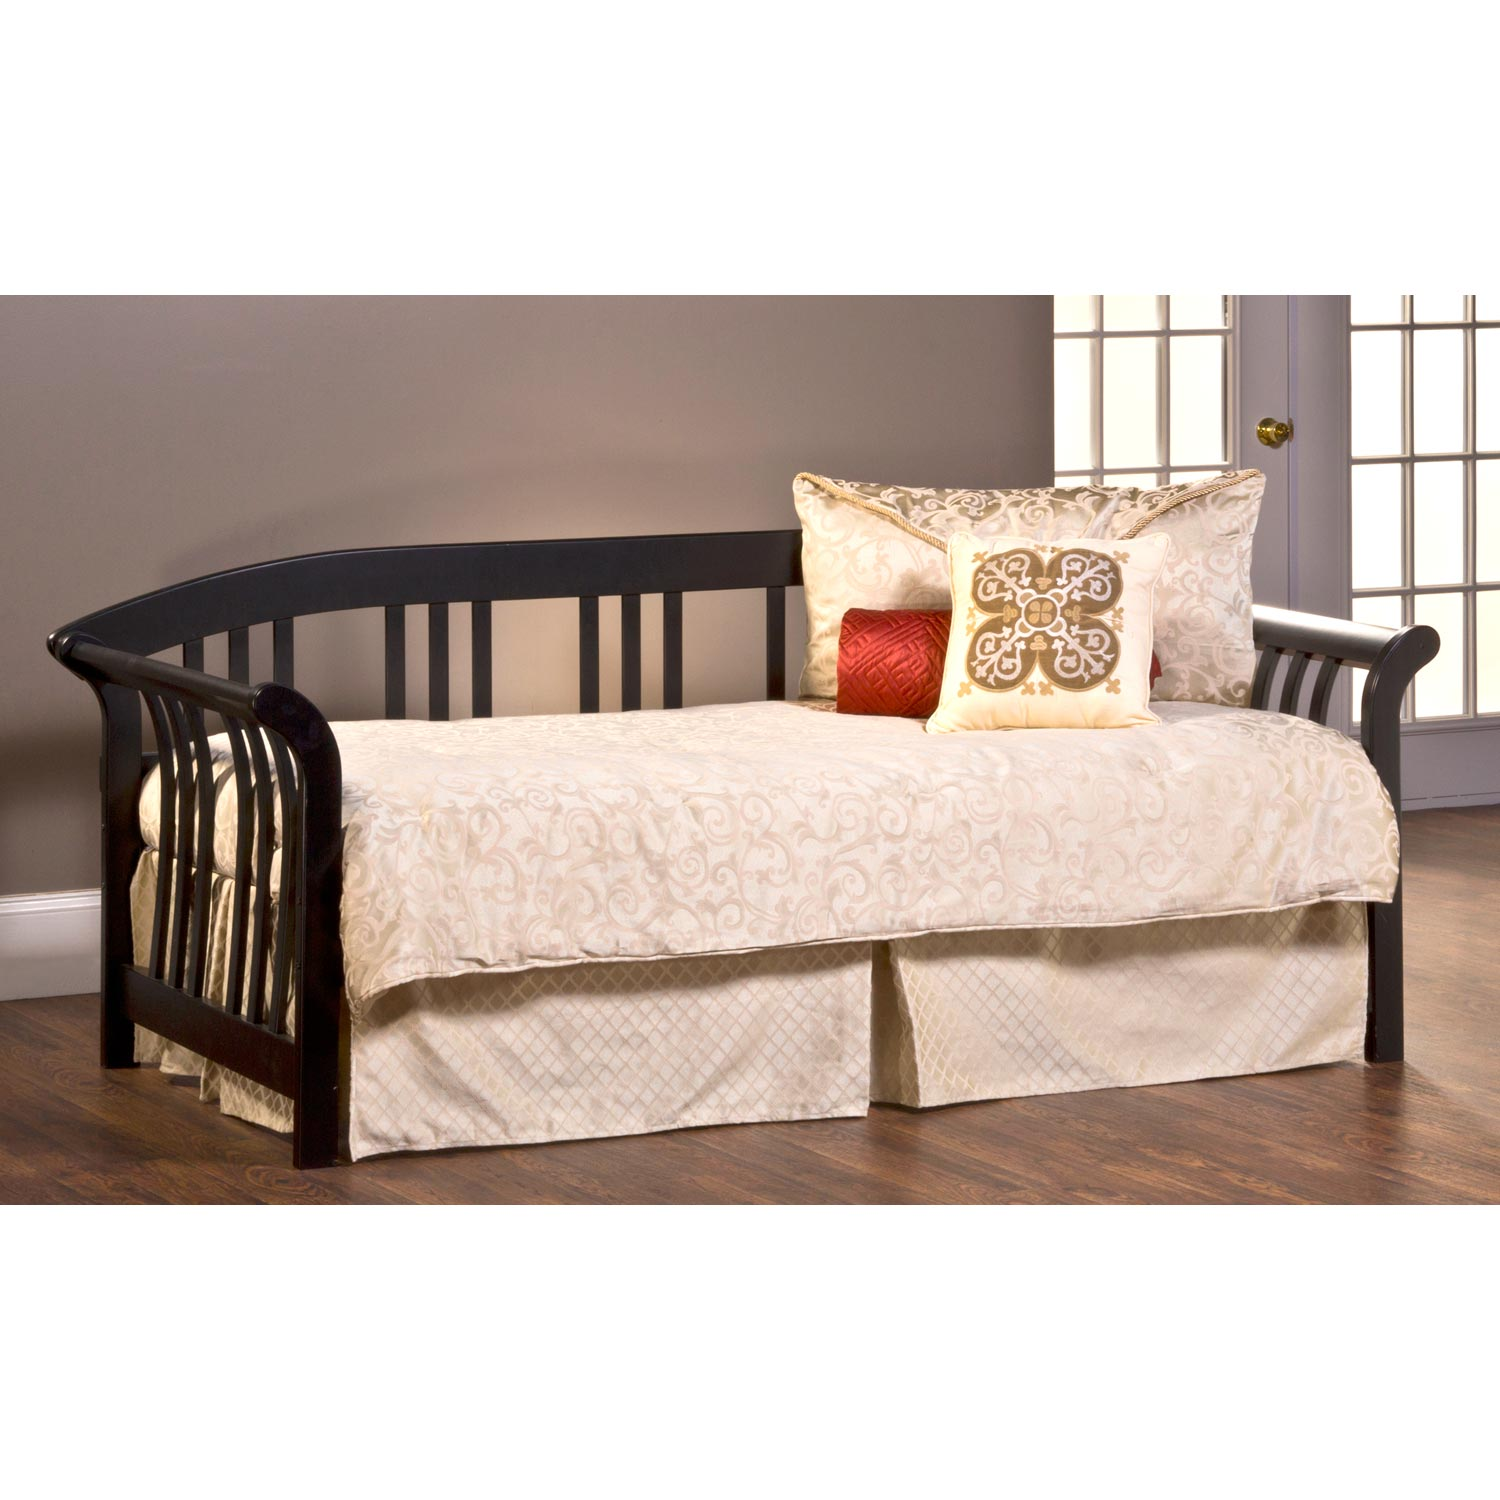 Dorchester Mission Style Daybed - Black - HILL-1046DBLH